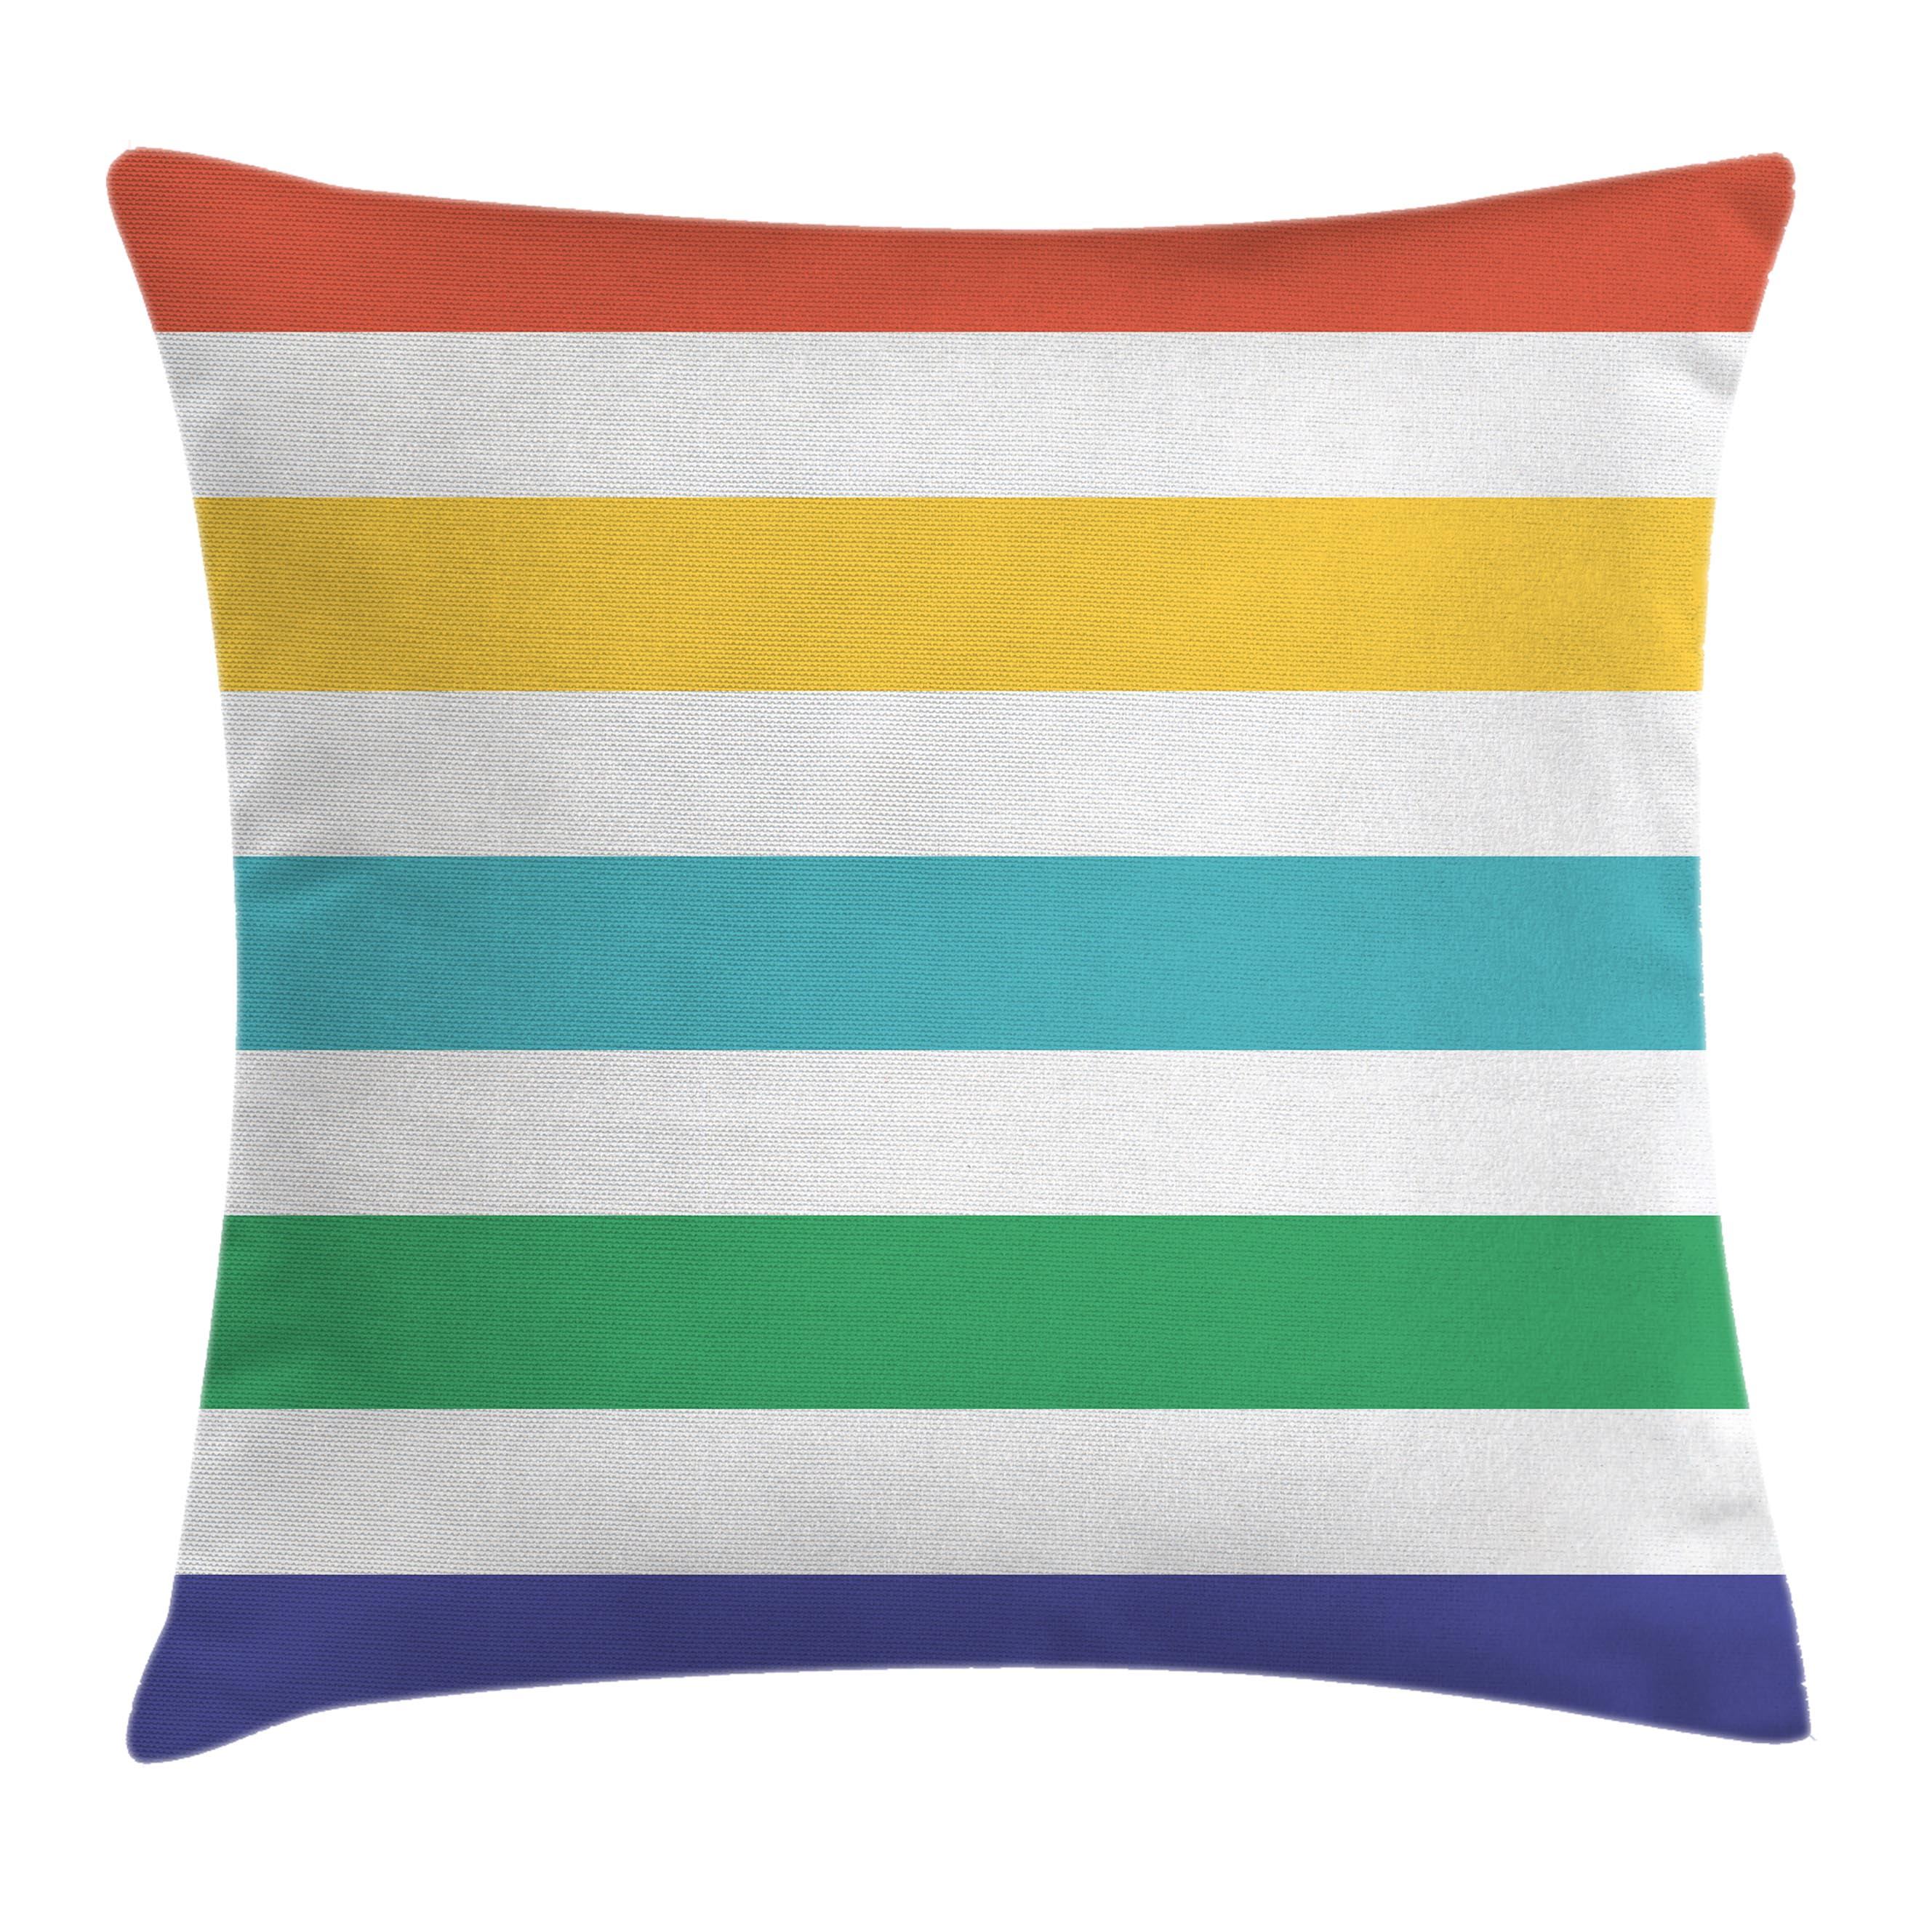 Striped Throw Pillow Cushion Cover, Rainbow Colored and White Fun Horizontal Lines Kids Room Red Yellow Blue Green Art, Decorative Square Accent Pillow Case, 24 X 24 Inches, Multicolor, by Ambesonne